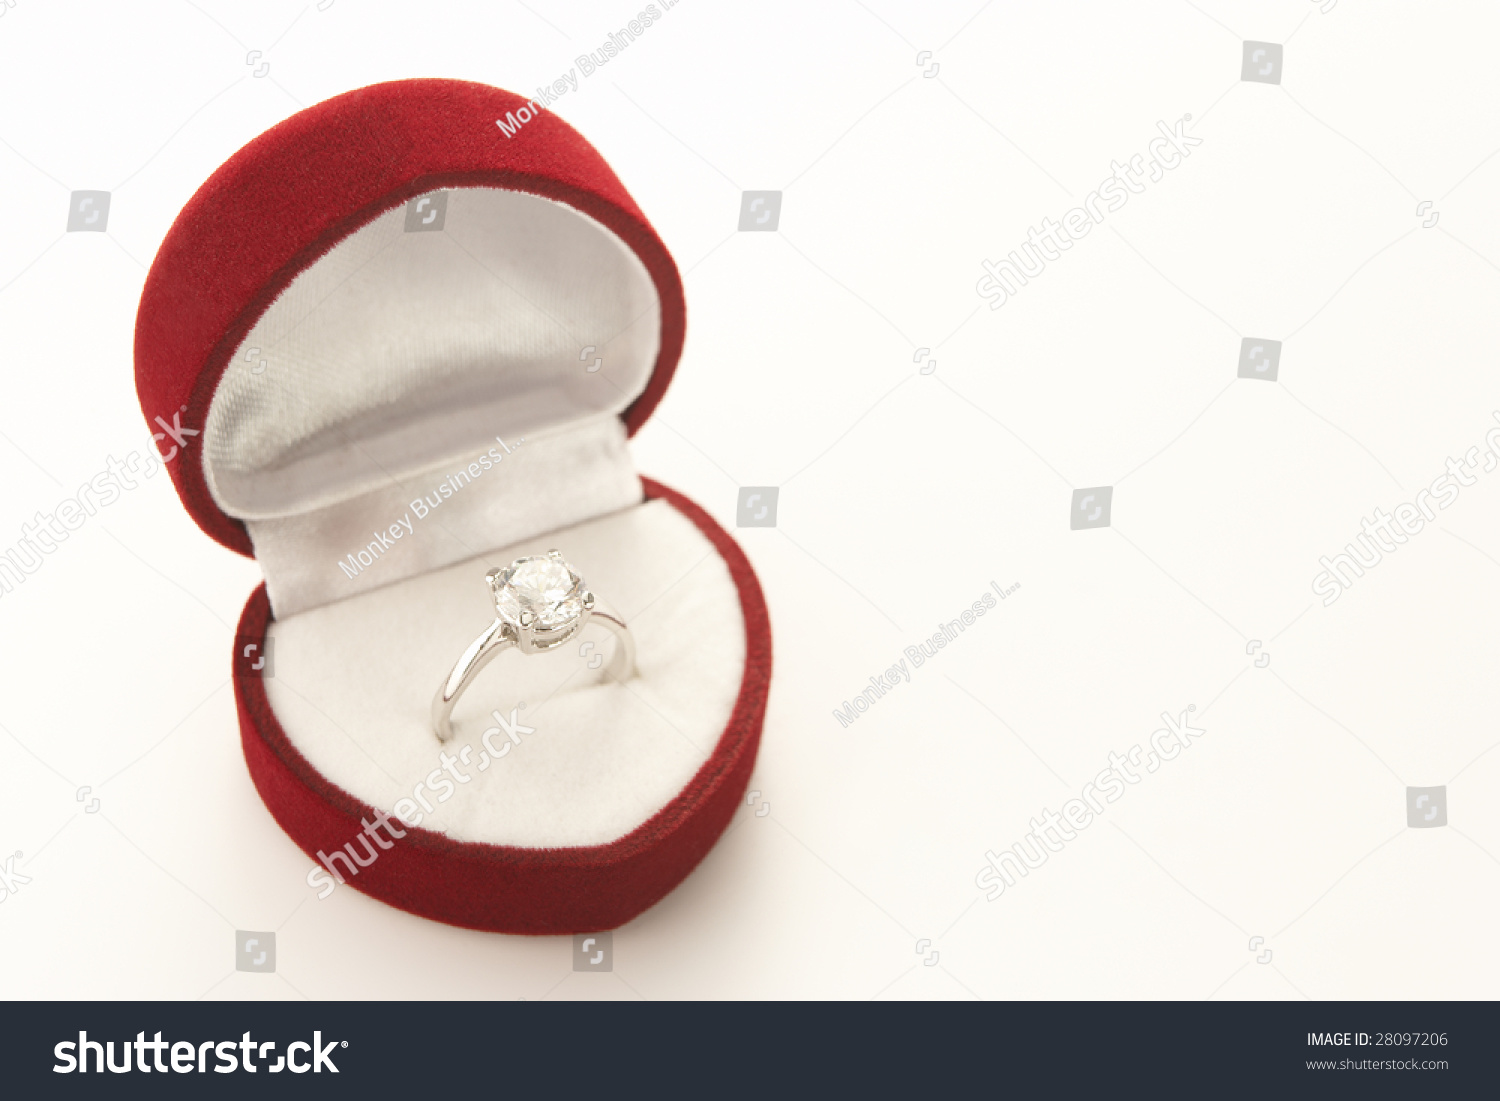 Diamond engagement in heart shaped ring box stock photo for Heart shaped engagement ring box